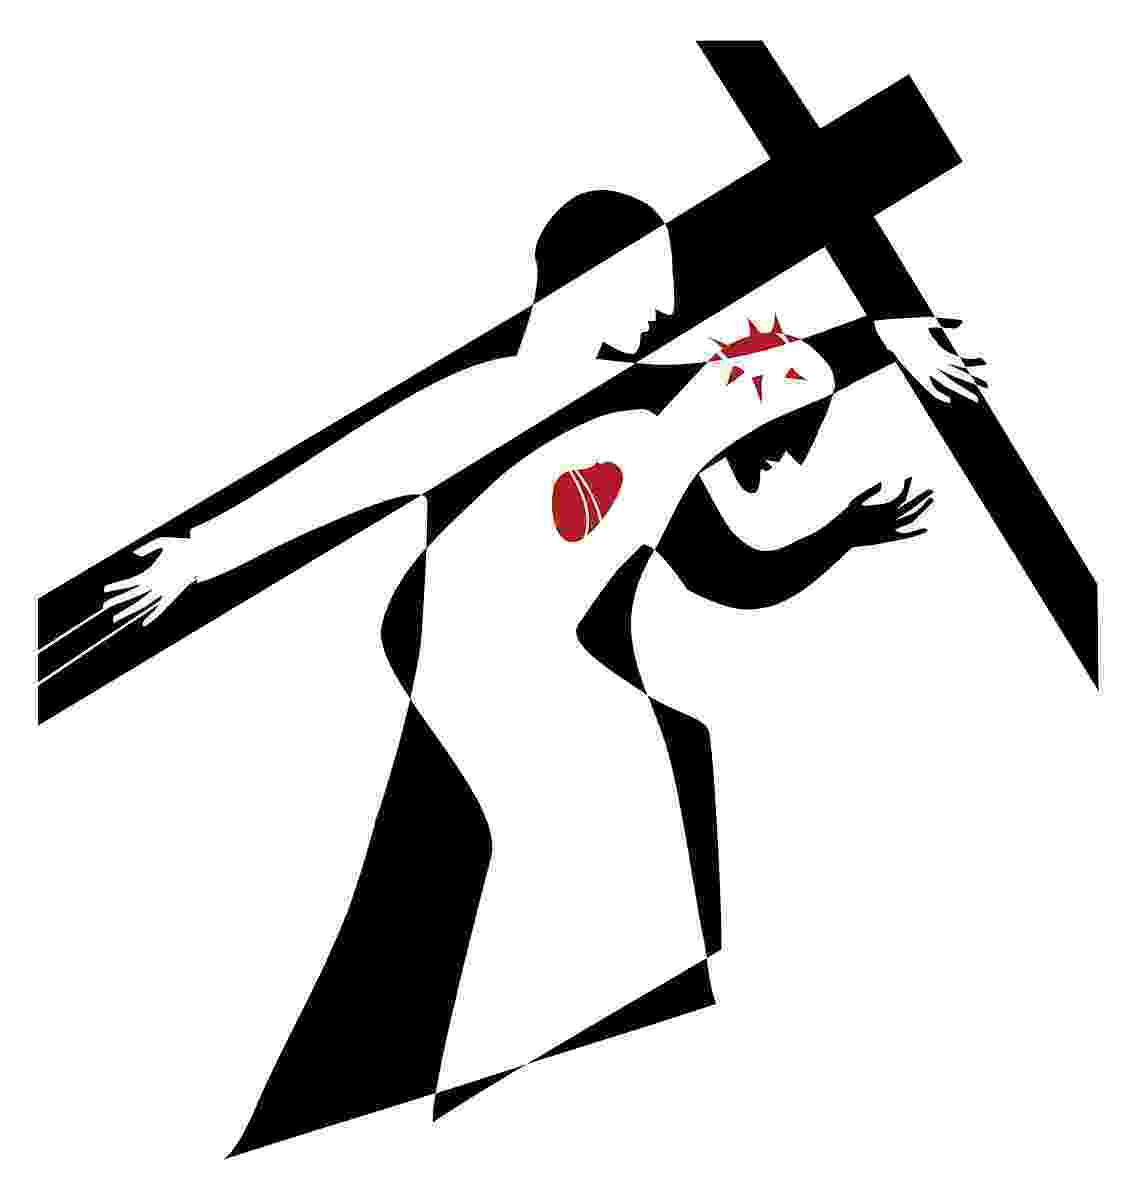 stations of the cross clip art jesus christ carrying cross image vector free download art clip cross of stations the